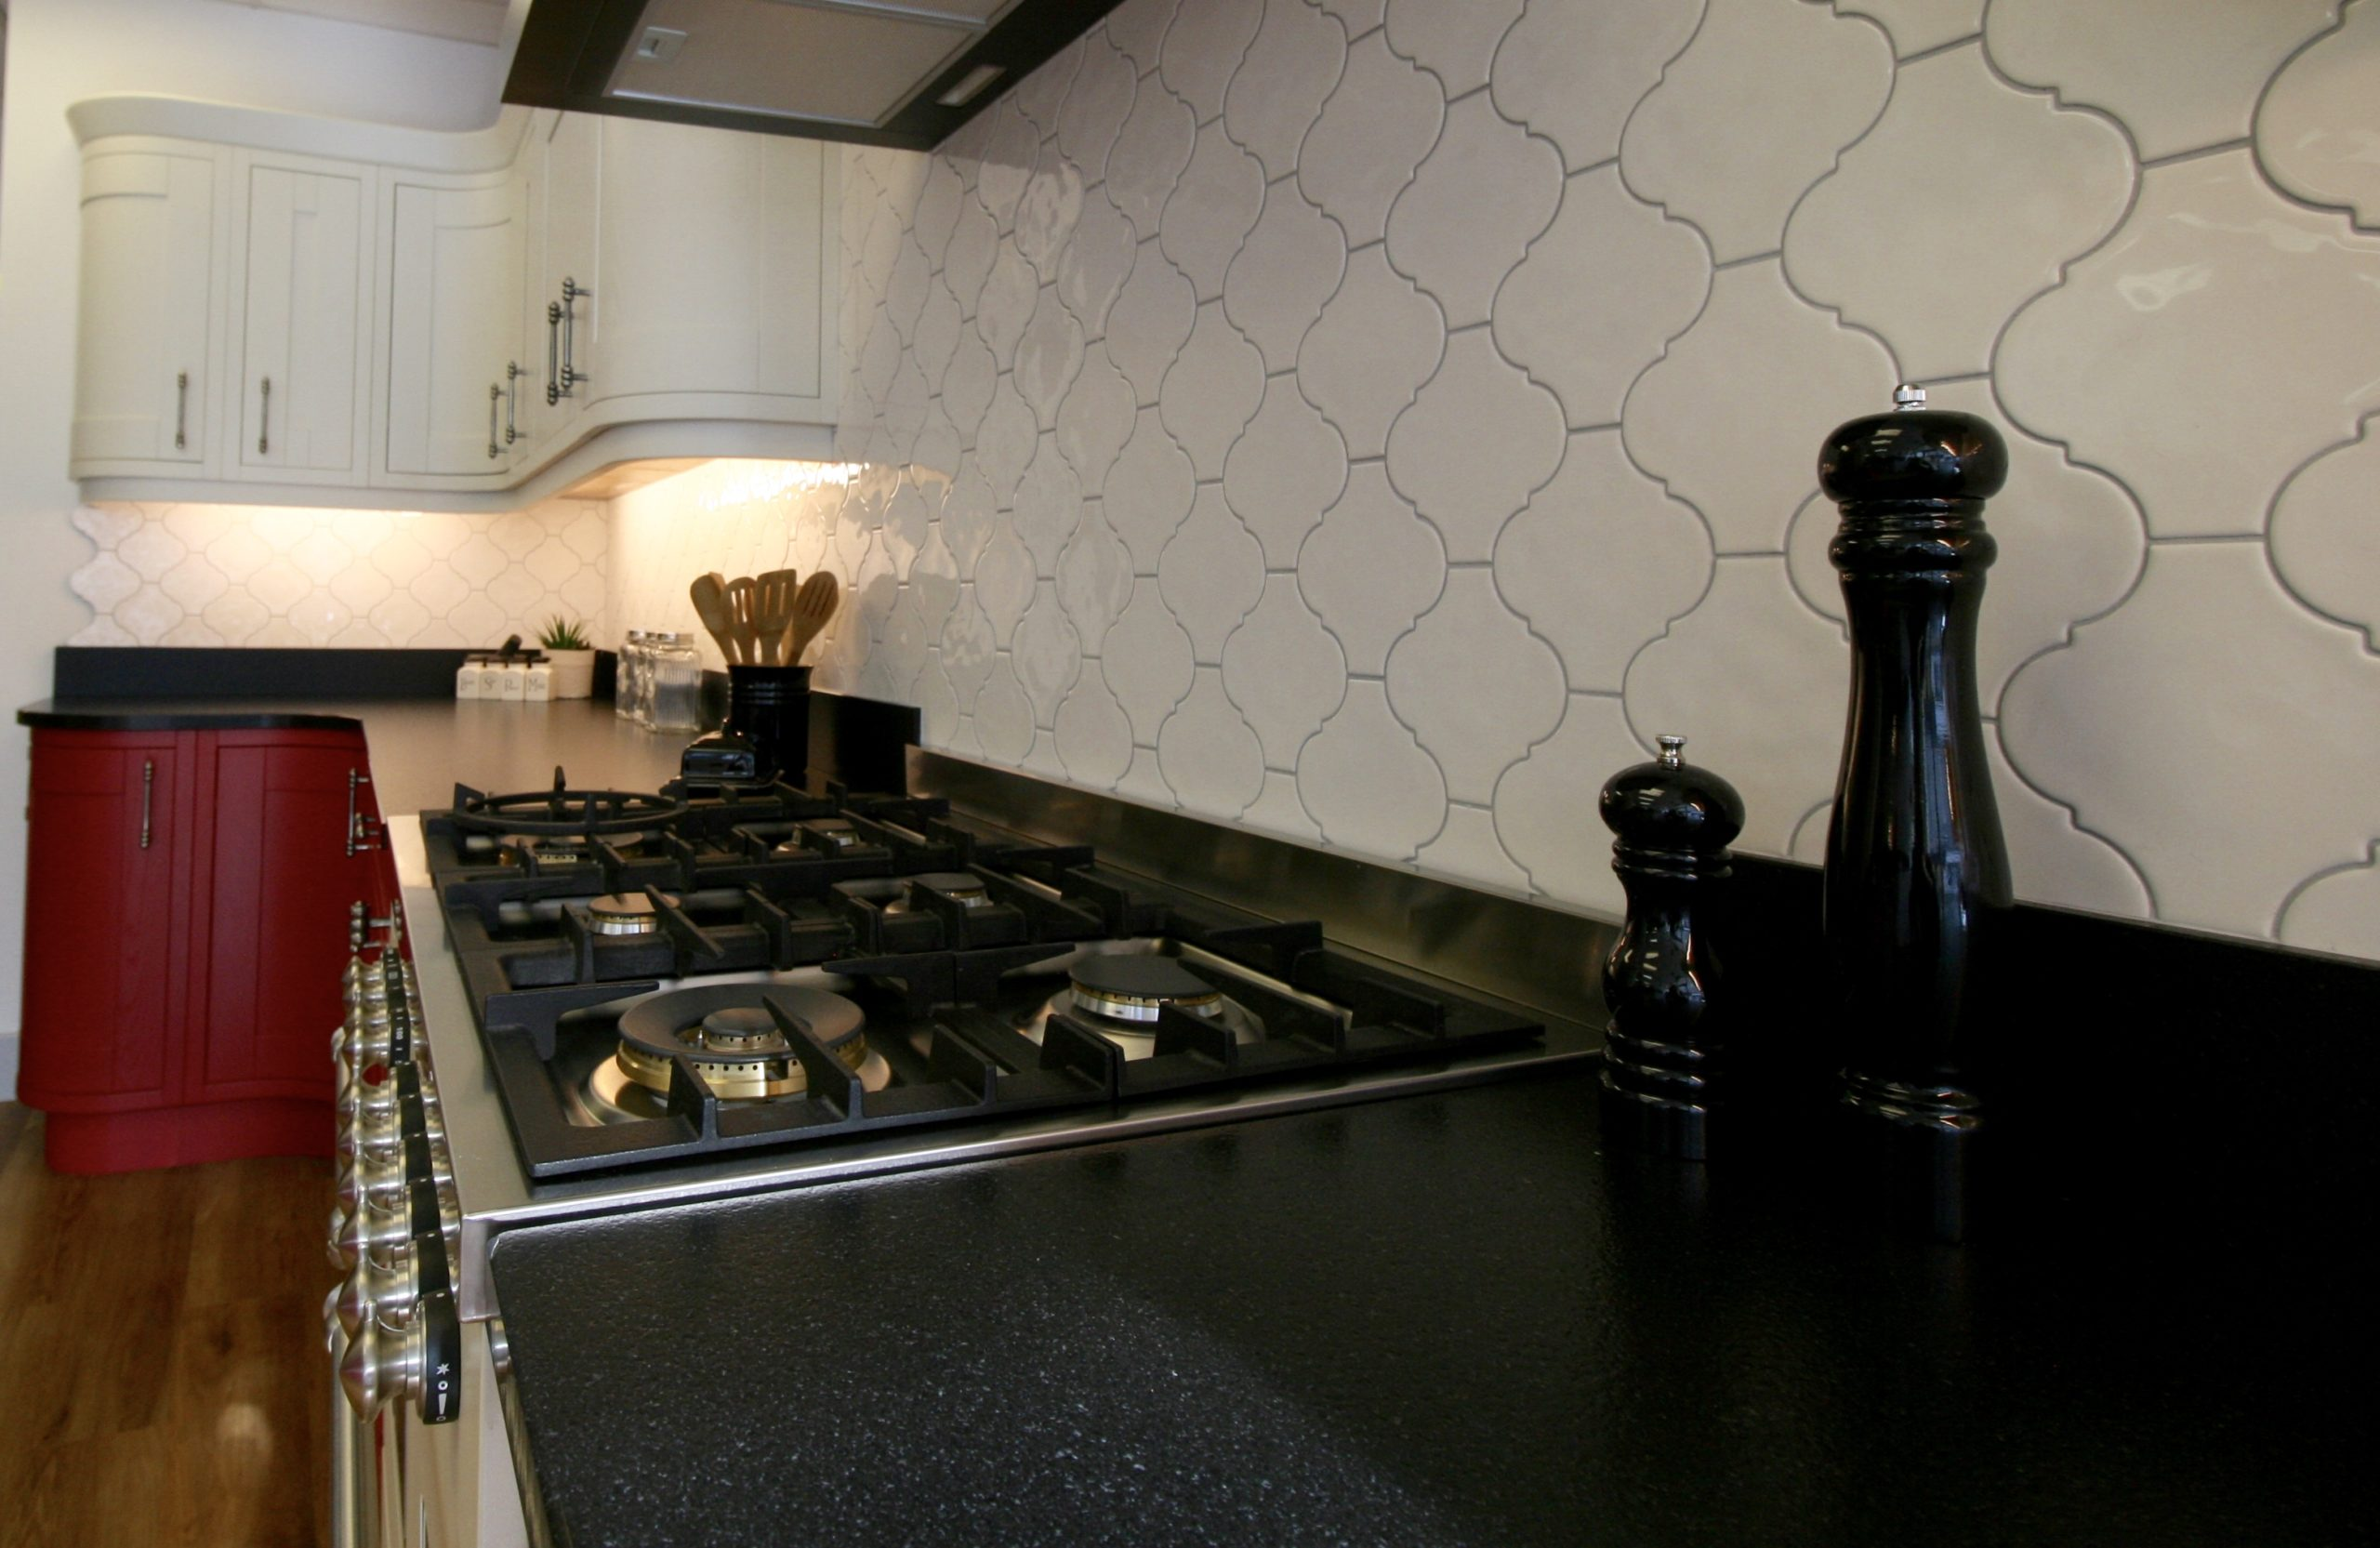 Moroccan style Quintessential cream tiles from Topps with pale grey grout and black Moak granite from the new Sensa range by Cosentino